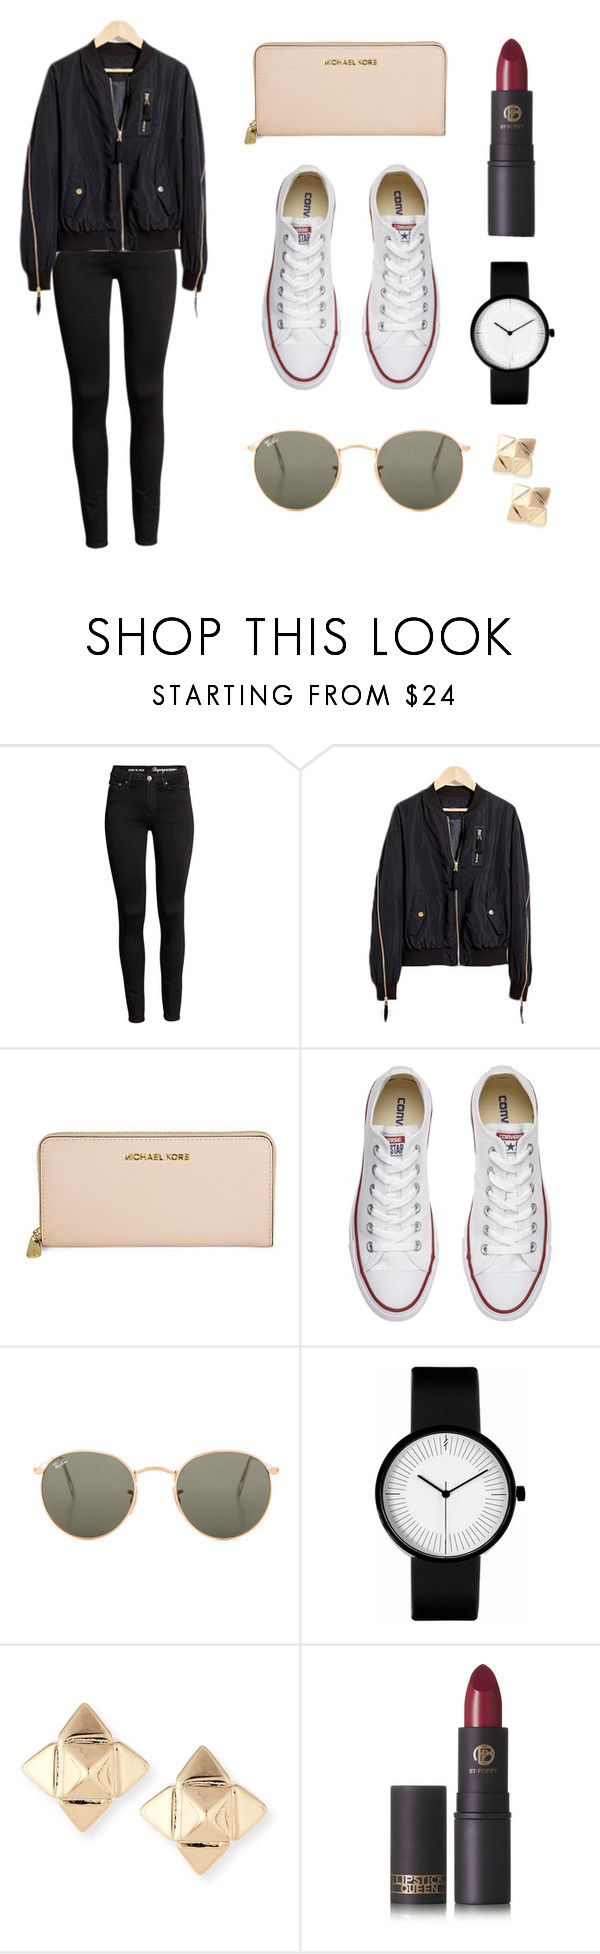 """""""Untitled #168"""" by anna-james-21 ❤ liked on Polyvore featuring Michael Kors, Converse, Ray-Ban, Valentino and Lipstick Queen"""